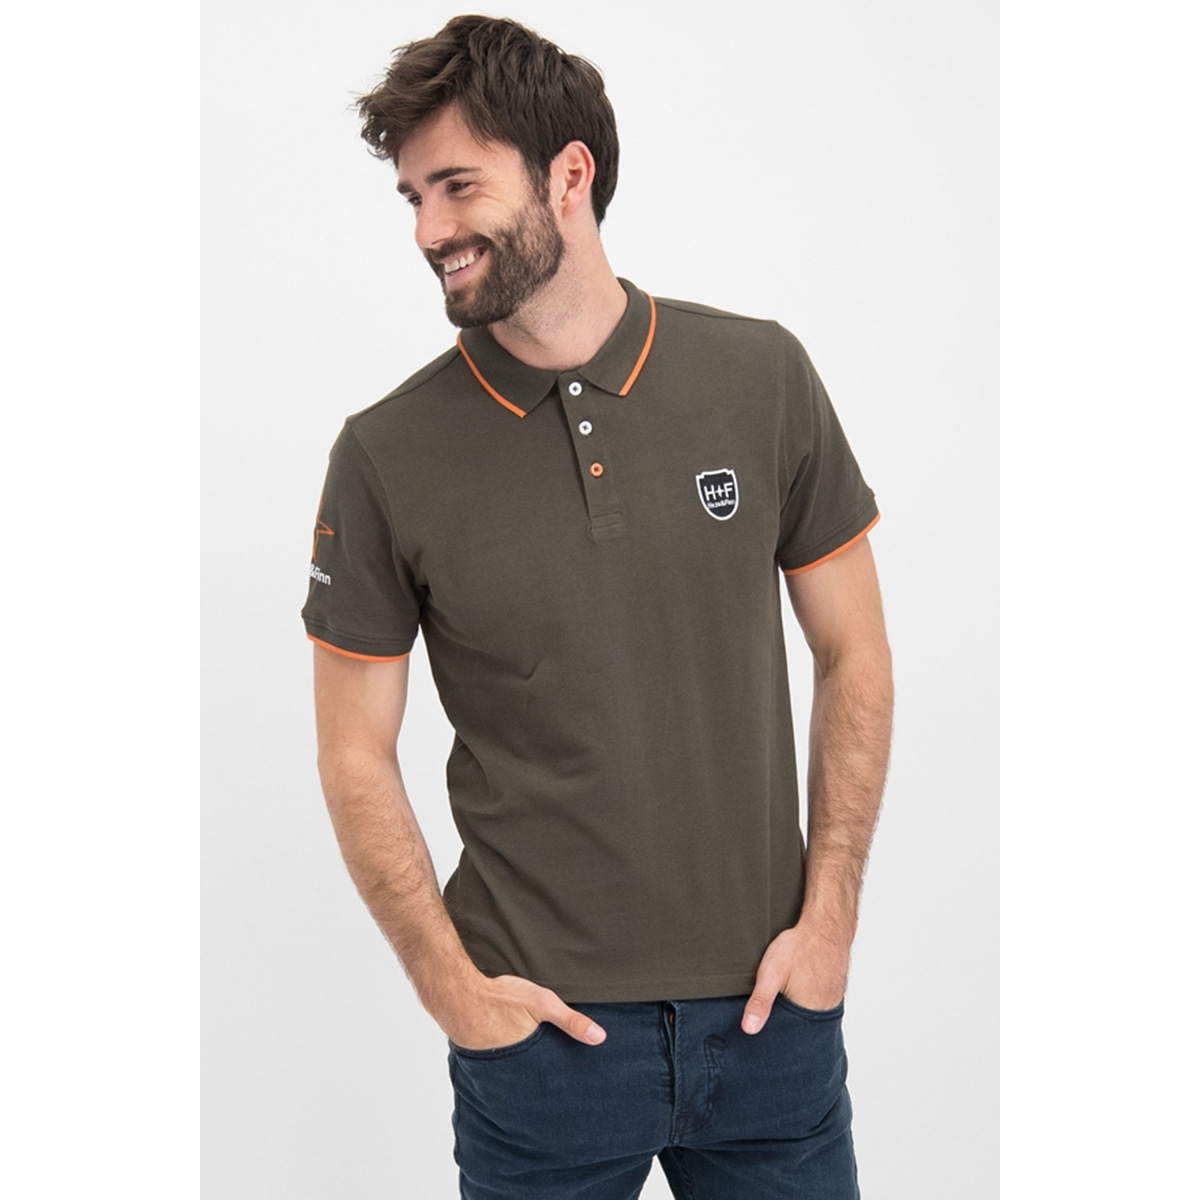 polo logo mu9 0350 haze & finn polo army green